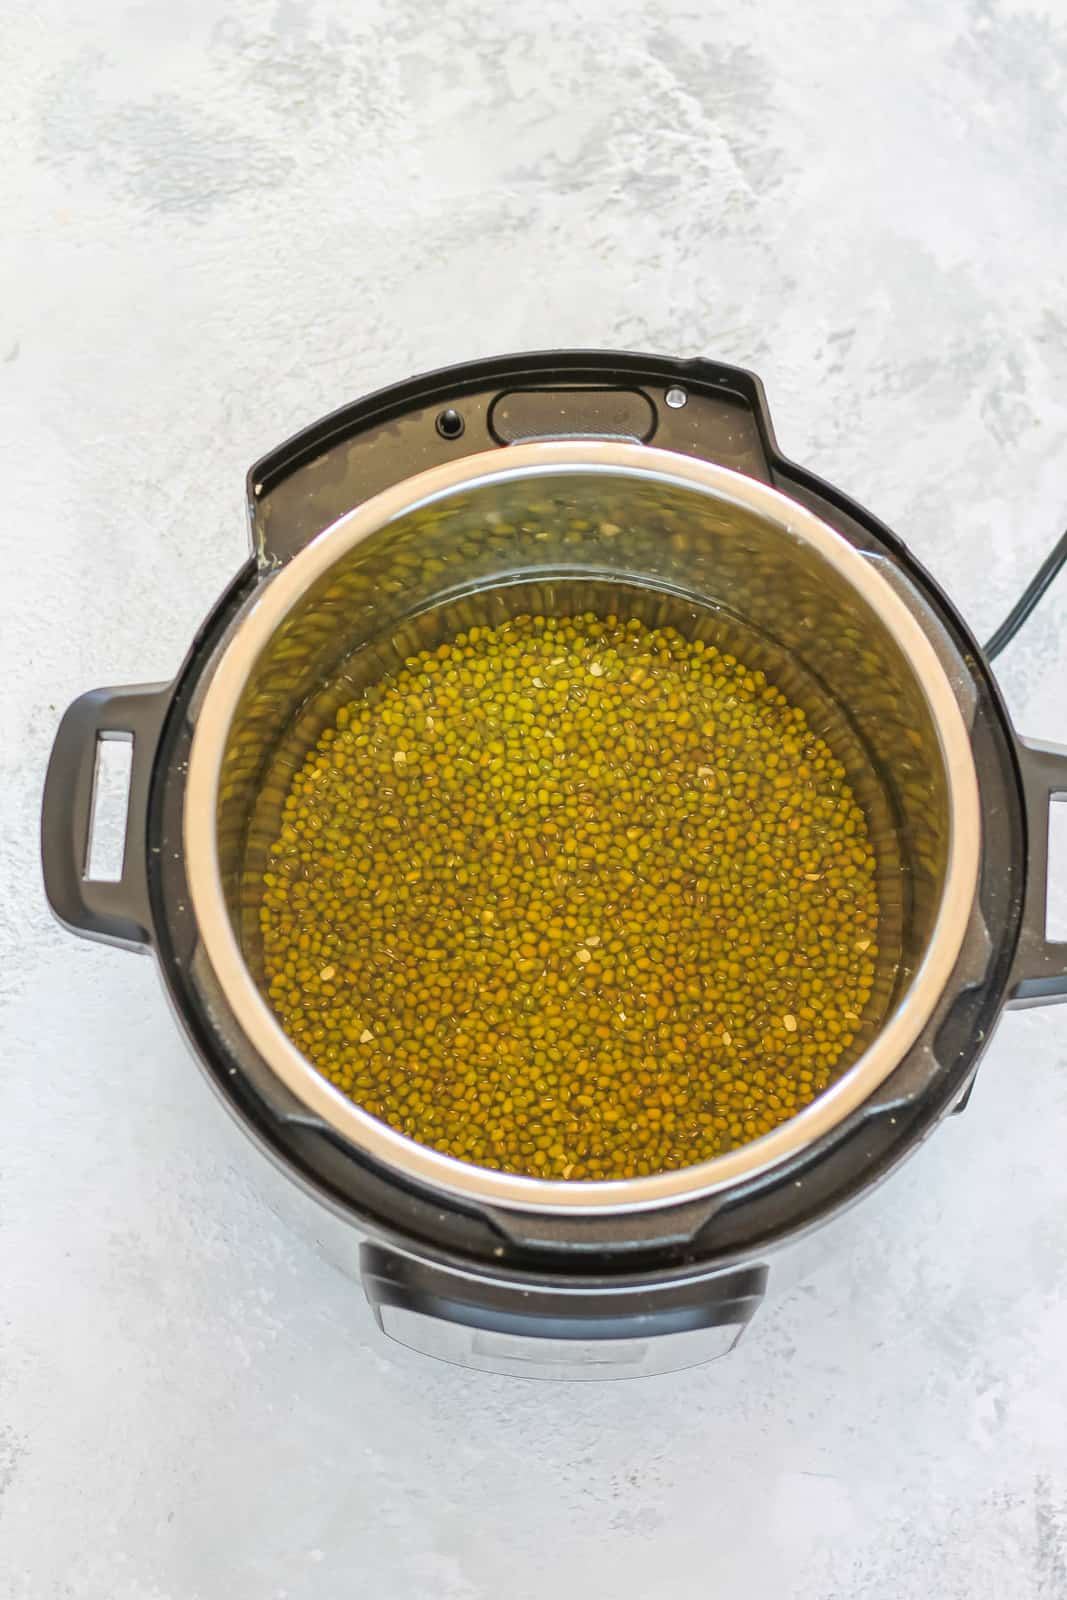 mung beans and water in an instant pot